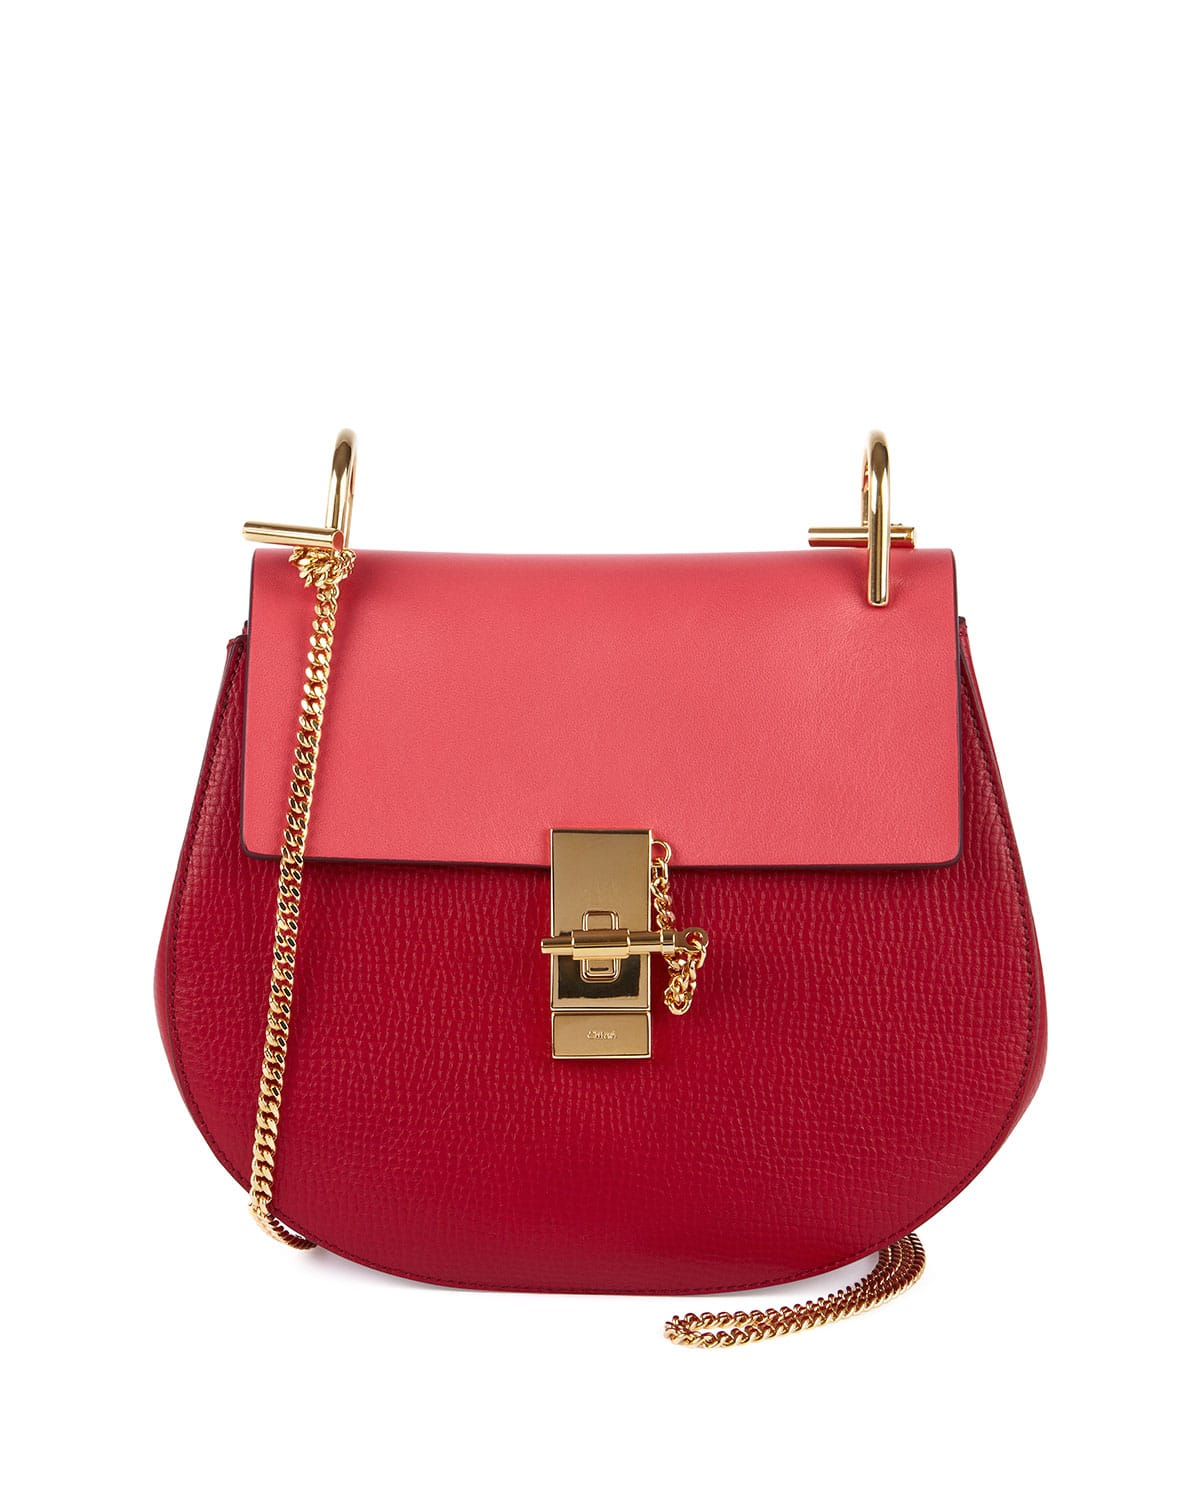 c0a0845a Chloe Spring/Summer 2015 Bag Collection Featuring the Faye Bag ...